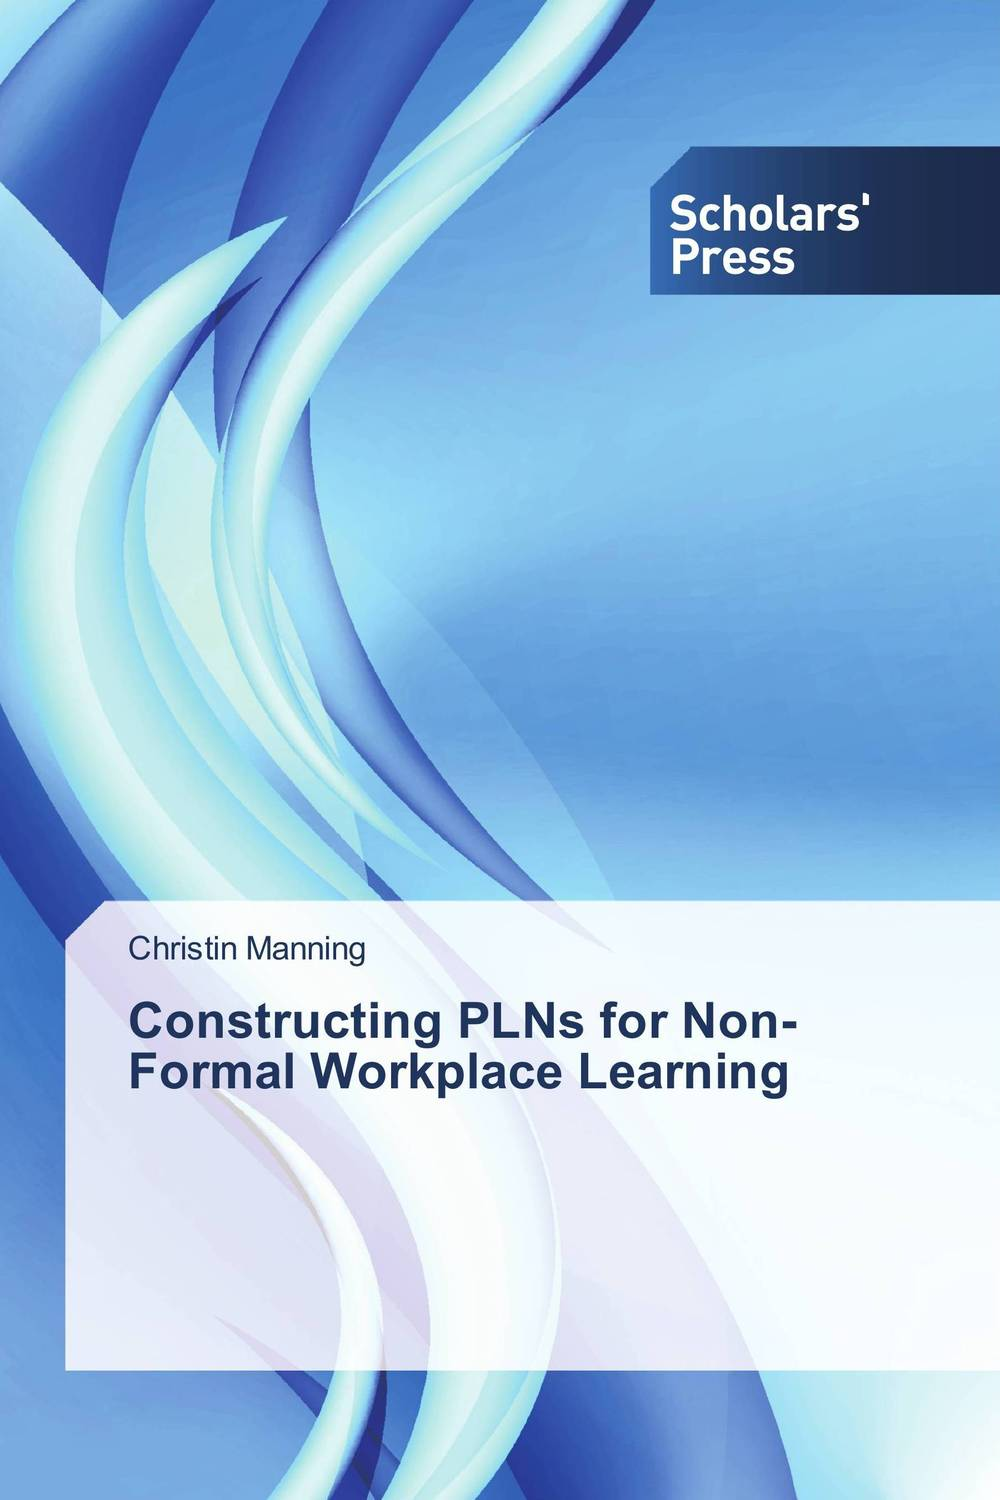 Constructing PLNs for Non-Formal Workplace Learning learning resources набор пробей